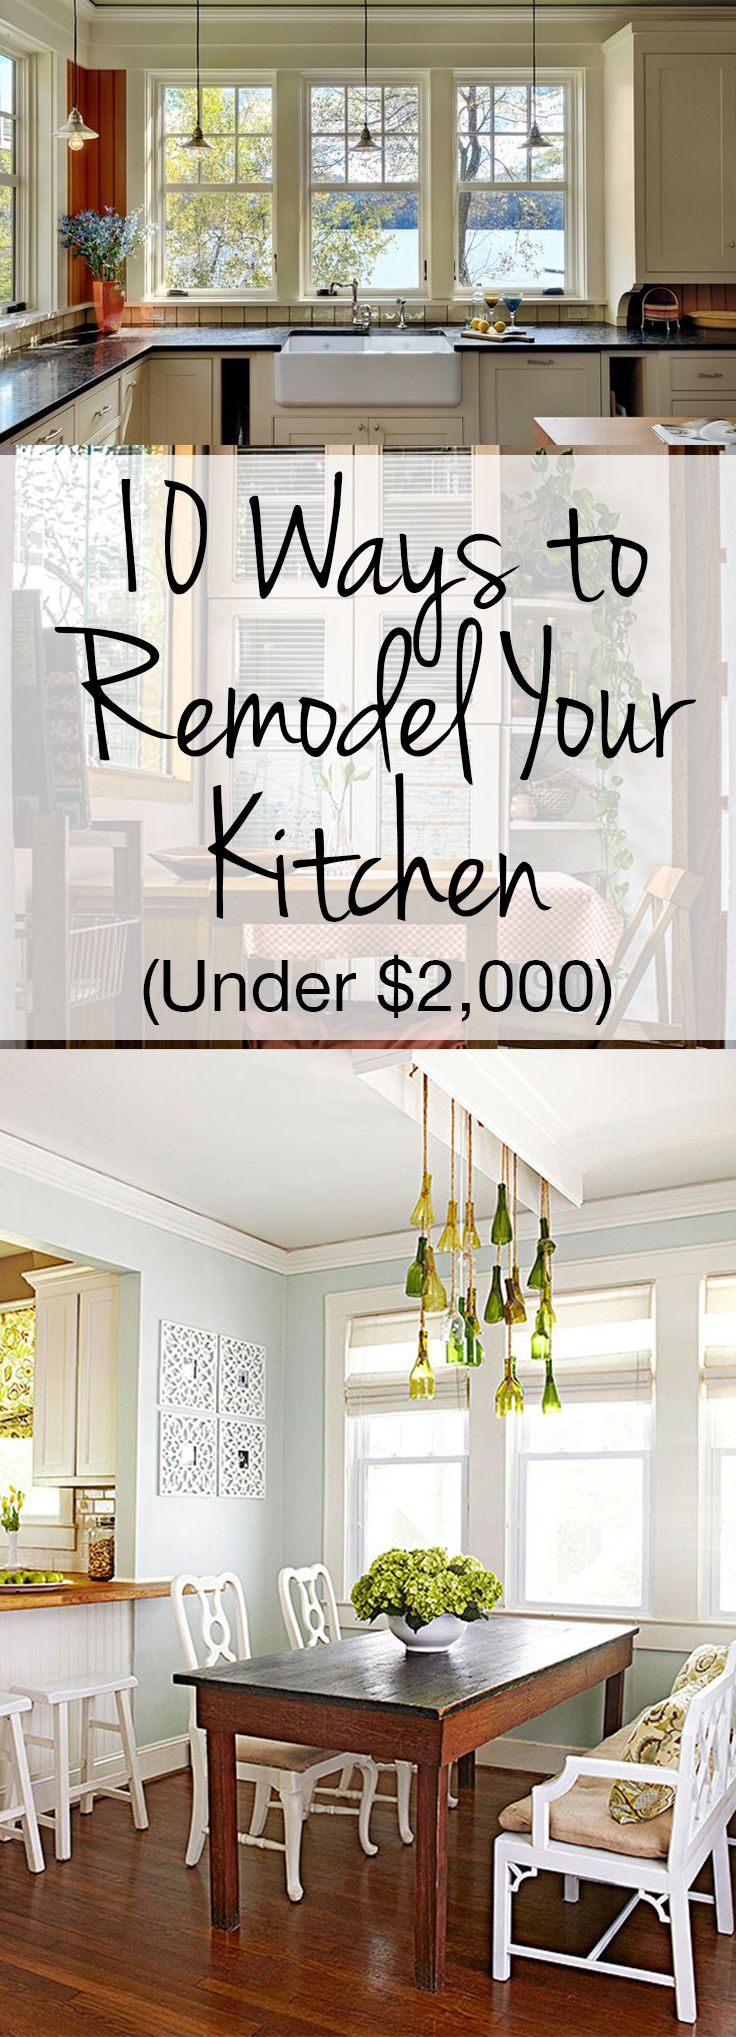 10 ways to remodel your kitchen under 2 000 for the home